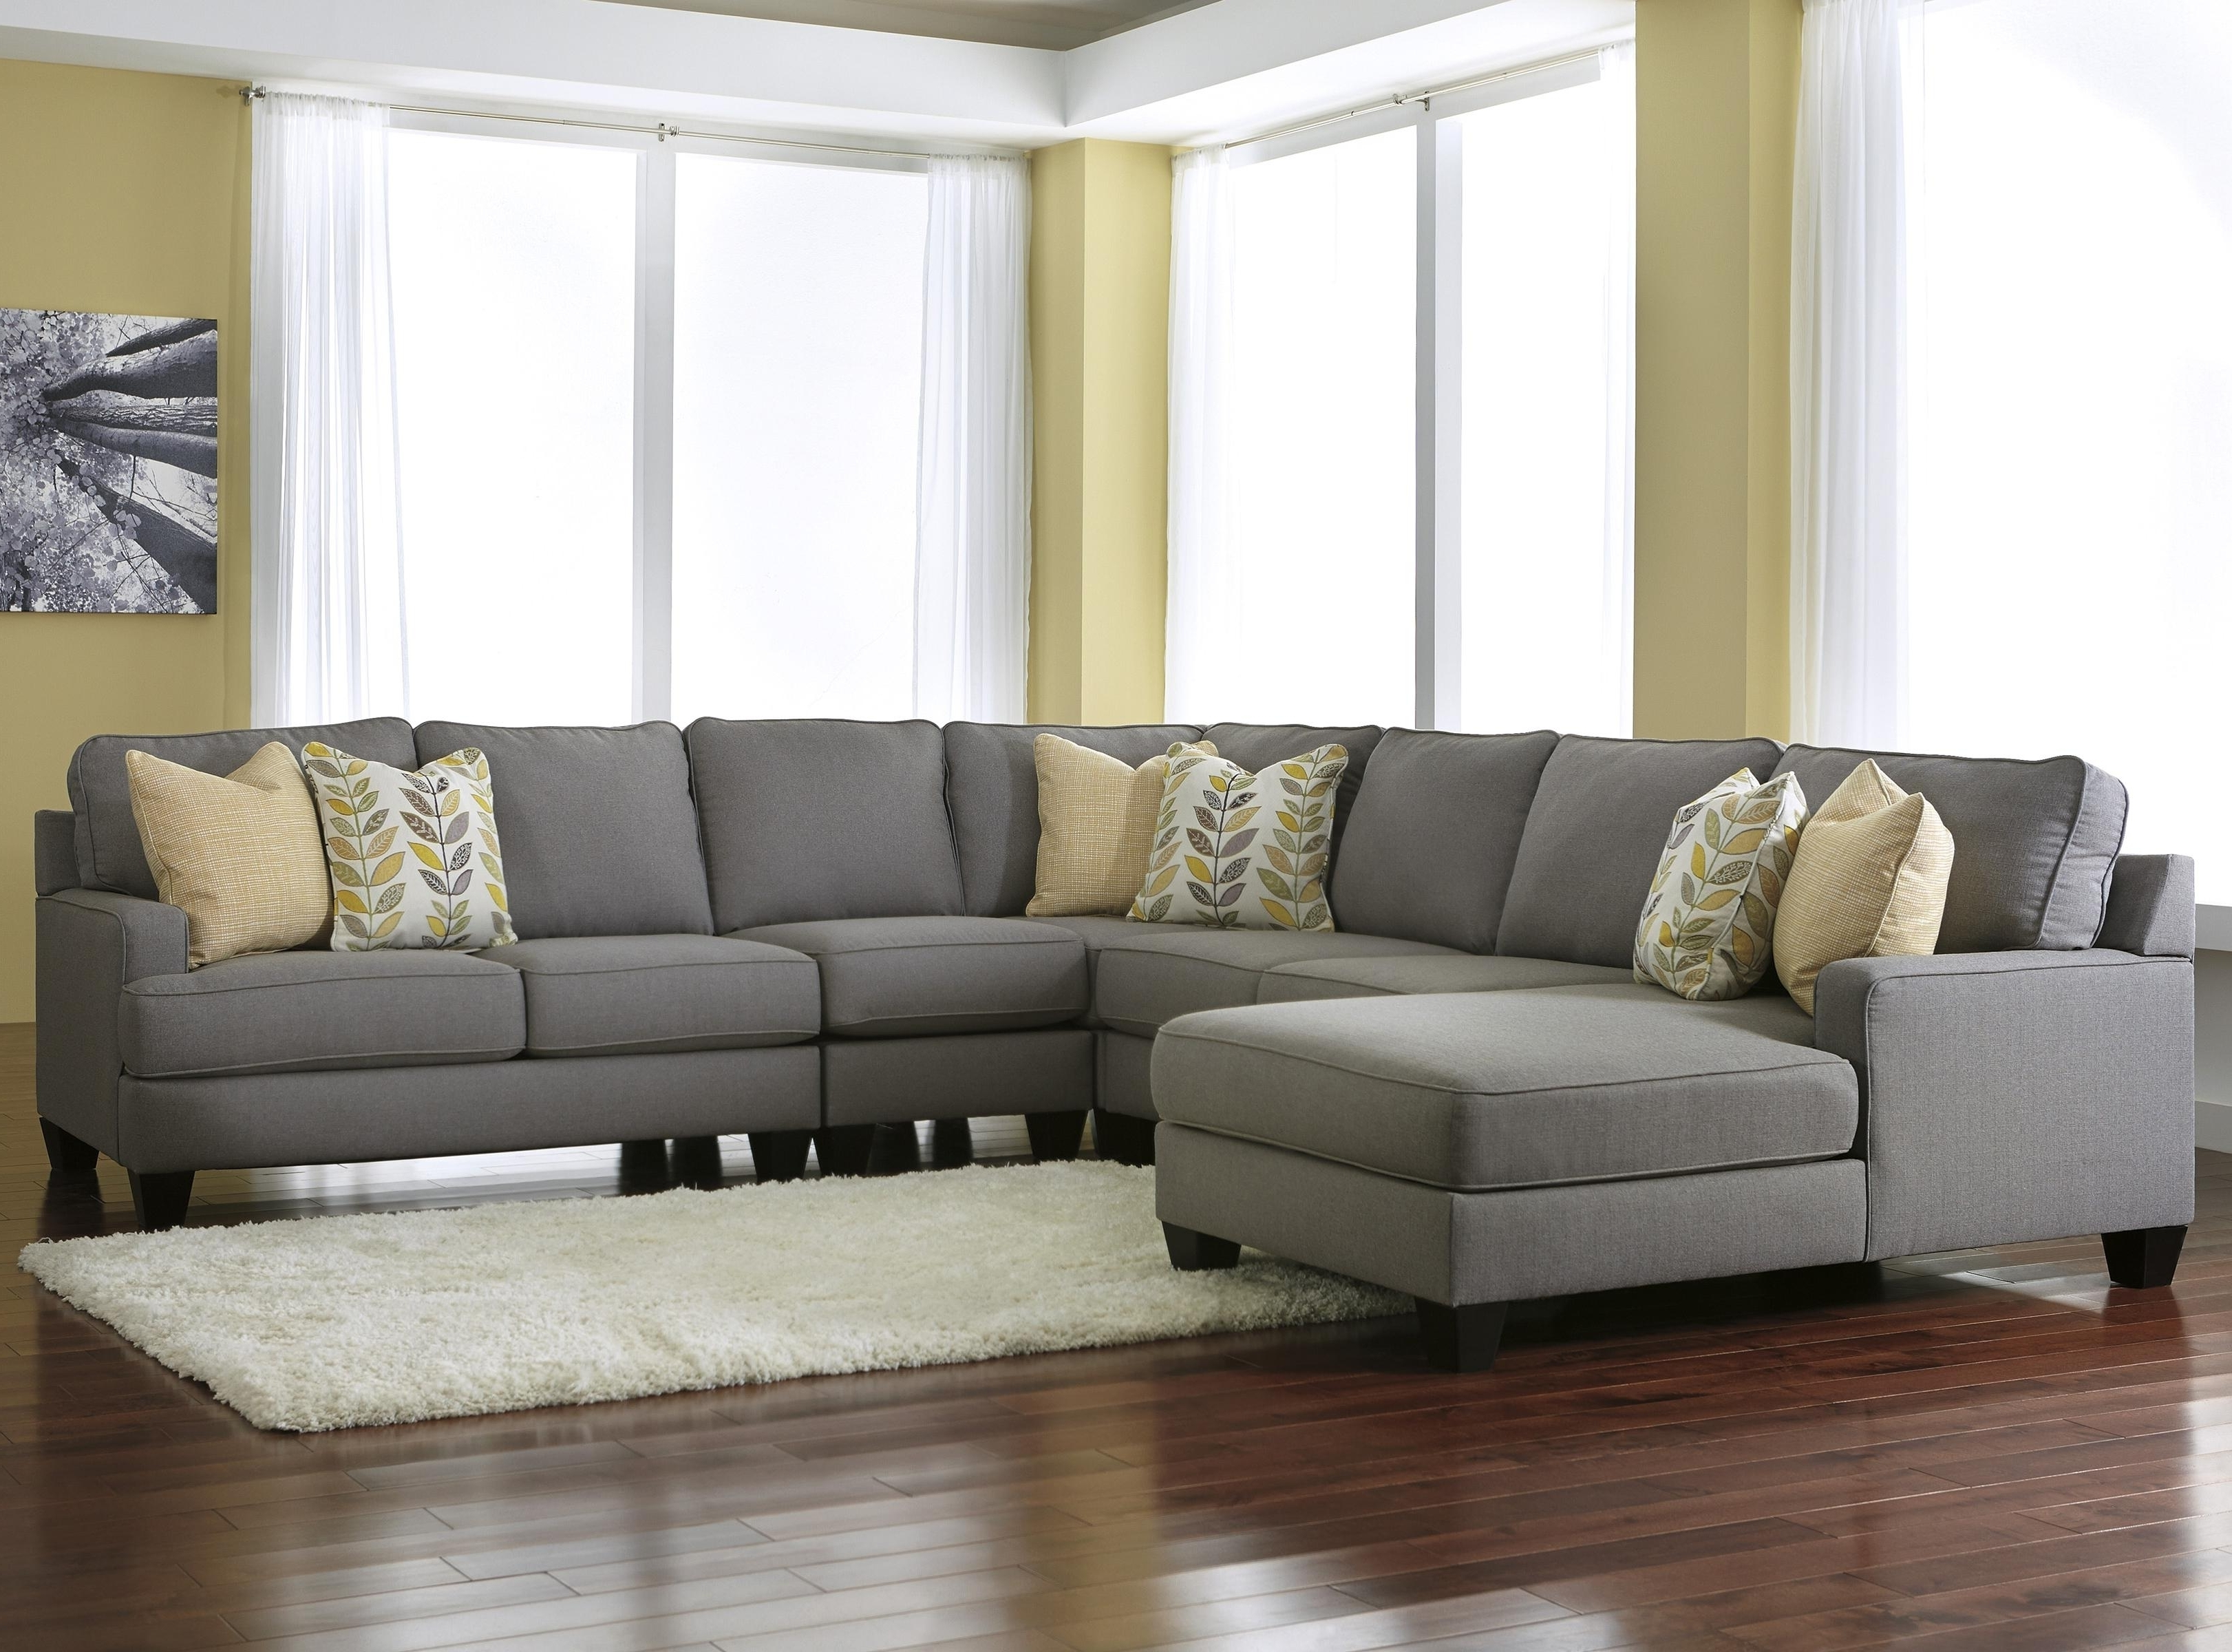 Sectional Sofas Duluth Mn • Sectional Sofa inside Mn Sectional Sofas (Image 7 of 10)